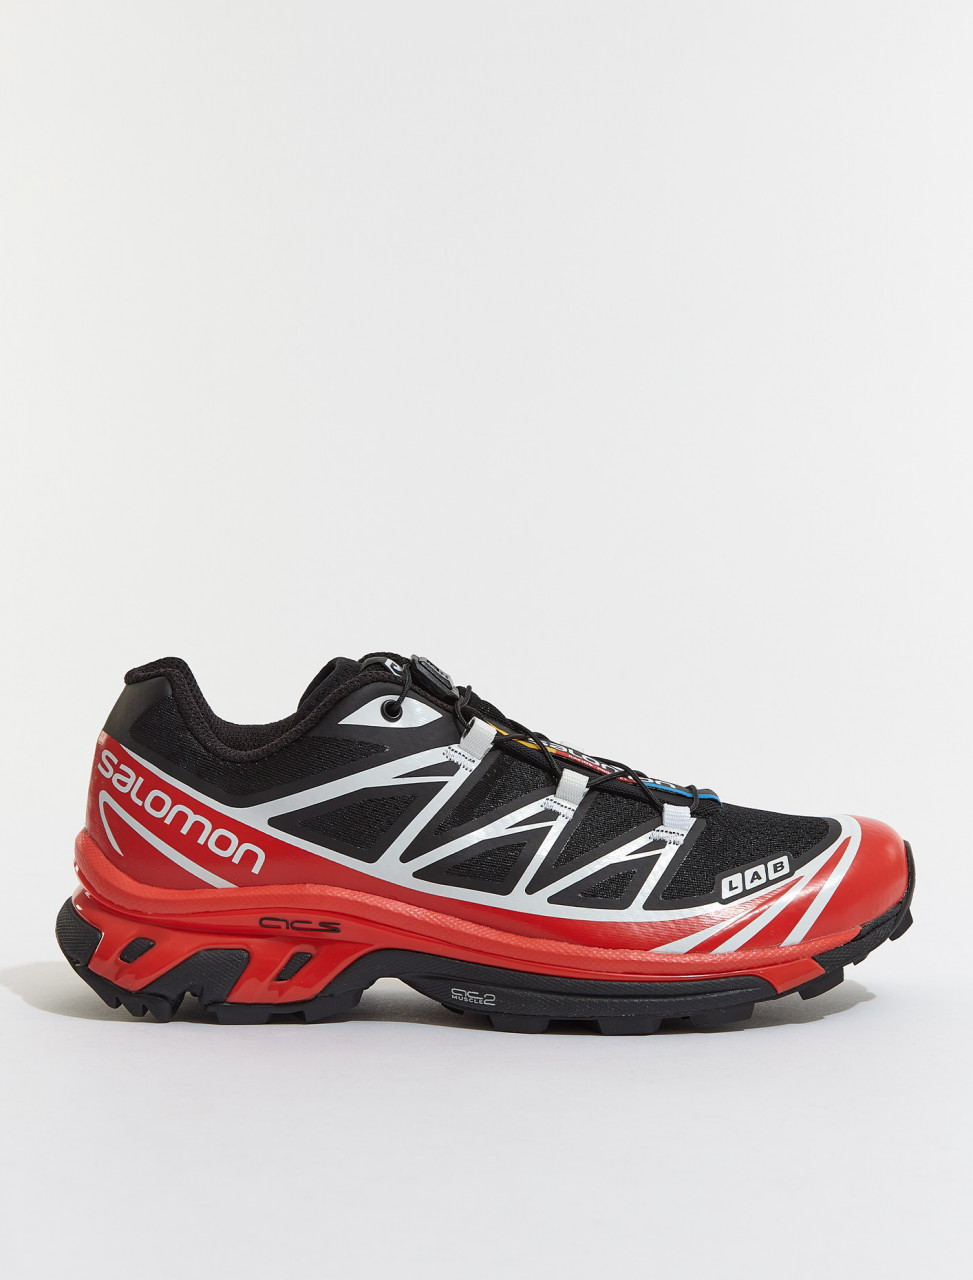 L41394800 SALOMON XT 6 ADVANCED BLACK RACING RED